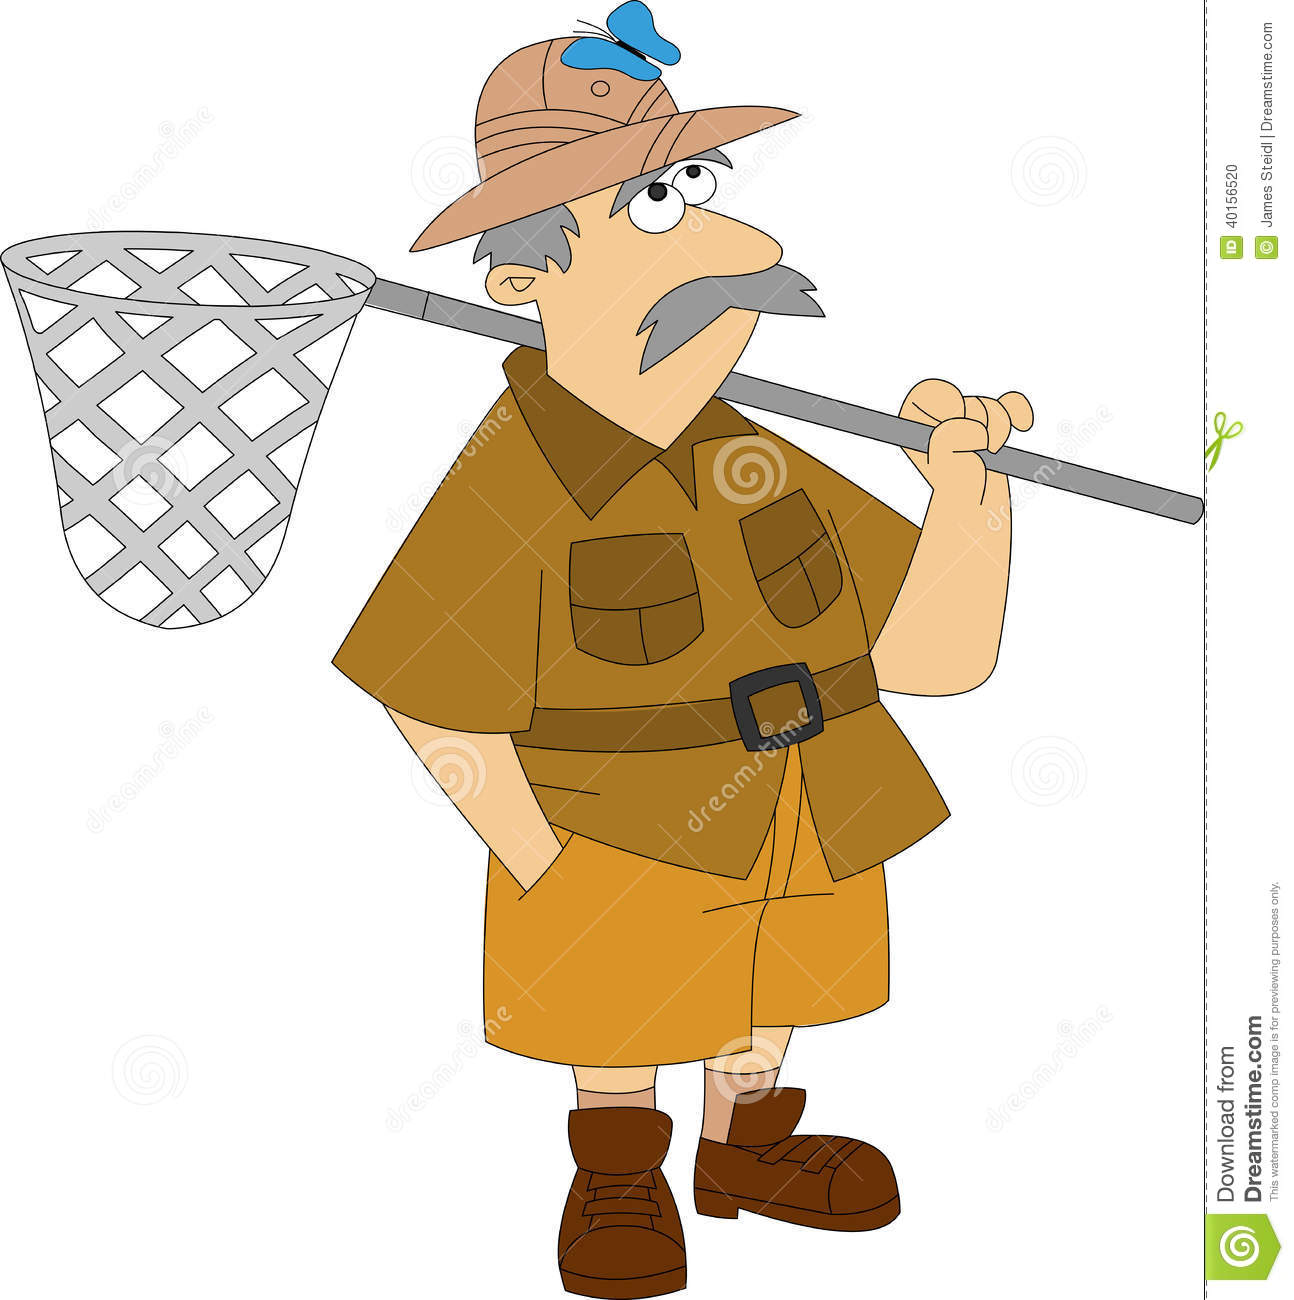 Hunting cartoons clipart clipart library Clipart Hunting Equipment - Free Clipart clipart library